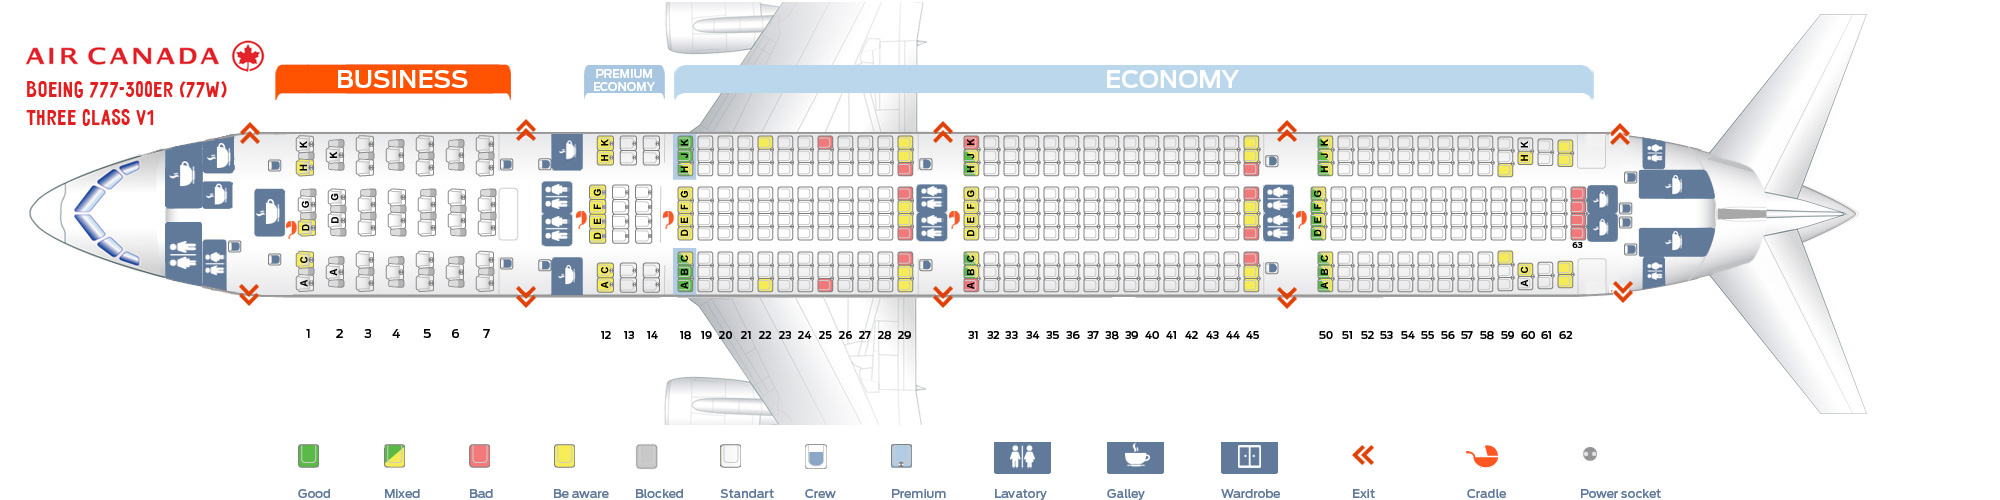 Air Canada 777 300Er Seat Map Seat map Boeing 777 300 Air Canada. Best seats in plane